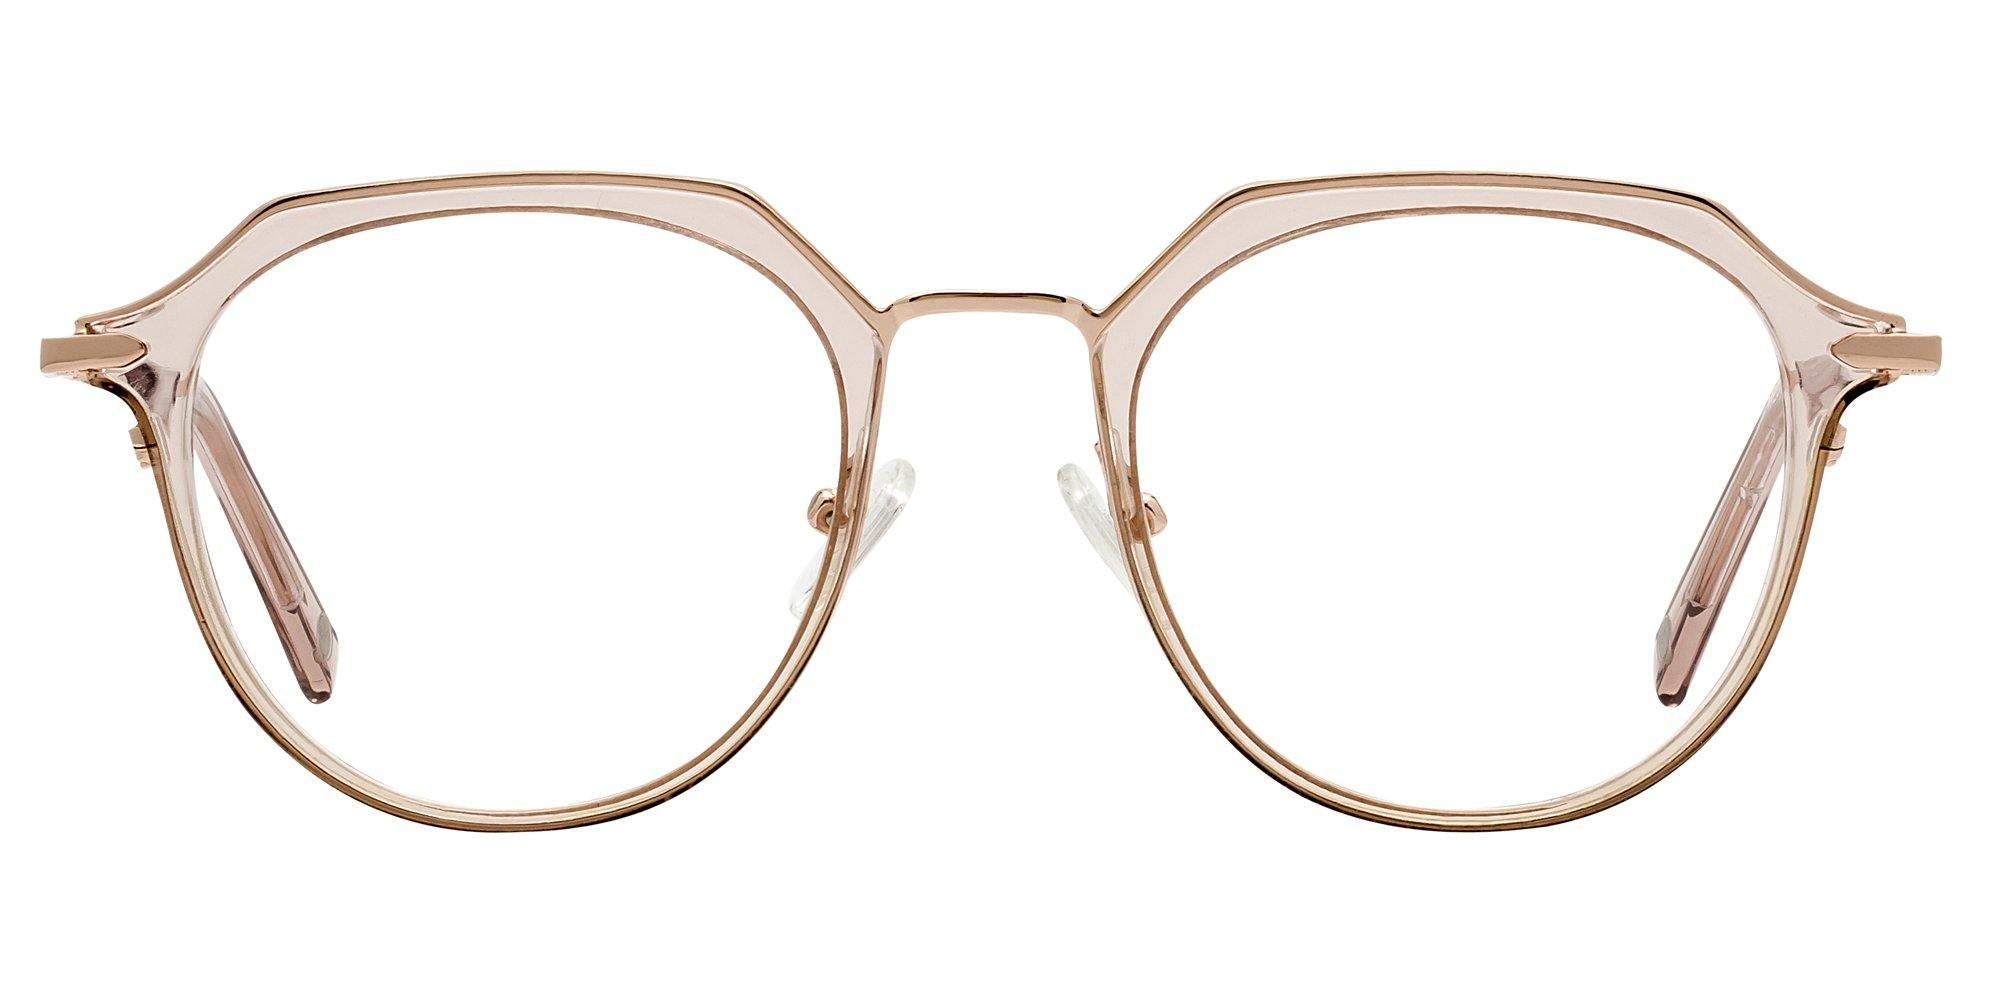 MELODY - Willow Mae Eyewear